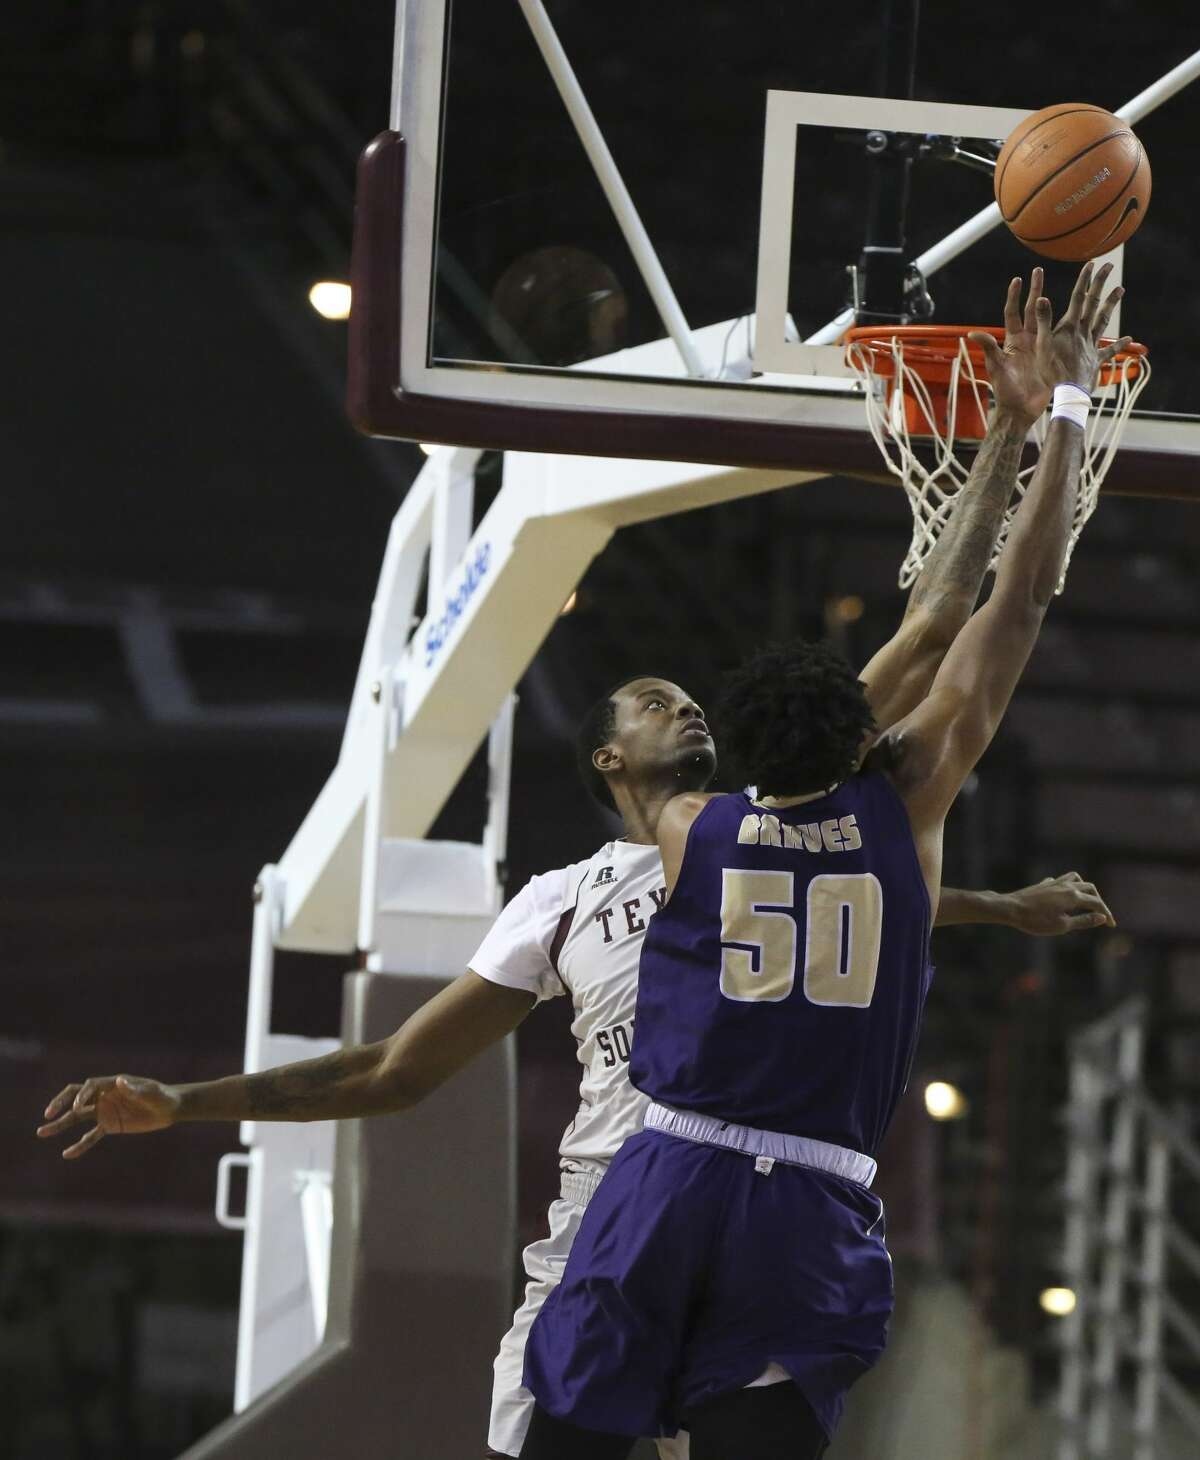 Texas Southern Tigers center Trayvon Reed (5) tries to block Alcorn State Braves forward Devon Brewer (50) during the second half of a Southwestern Athletic Conference game at Health & Physical Education Arena on Wednesday, Jan. 3, 2018, in Houston. The Texas Southern Tigers defeated the Alcorn State Braves 85-70. ( Yi-Chin Lee / Houston Chronicle )